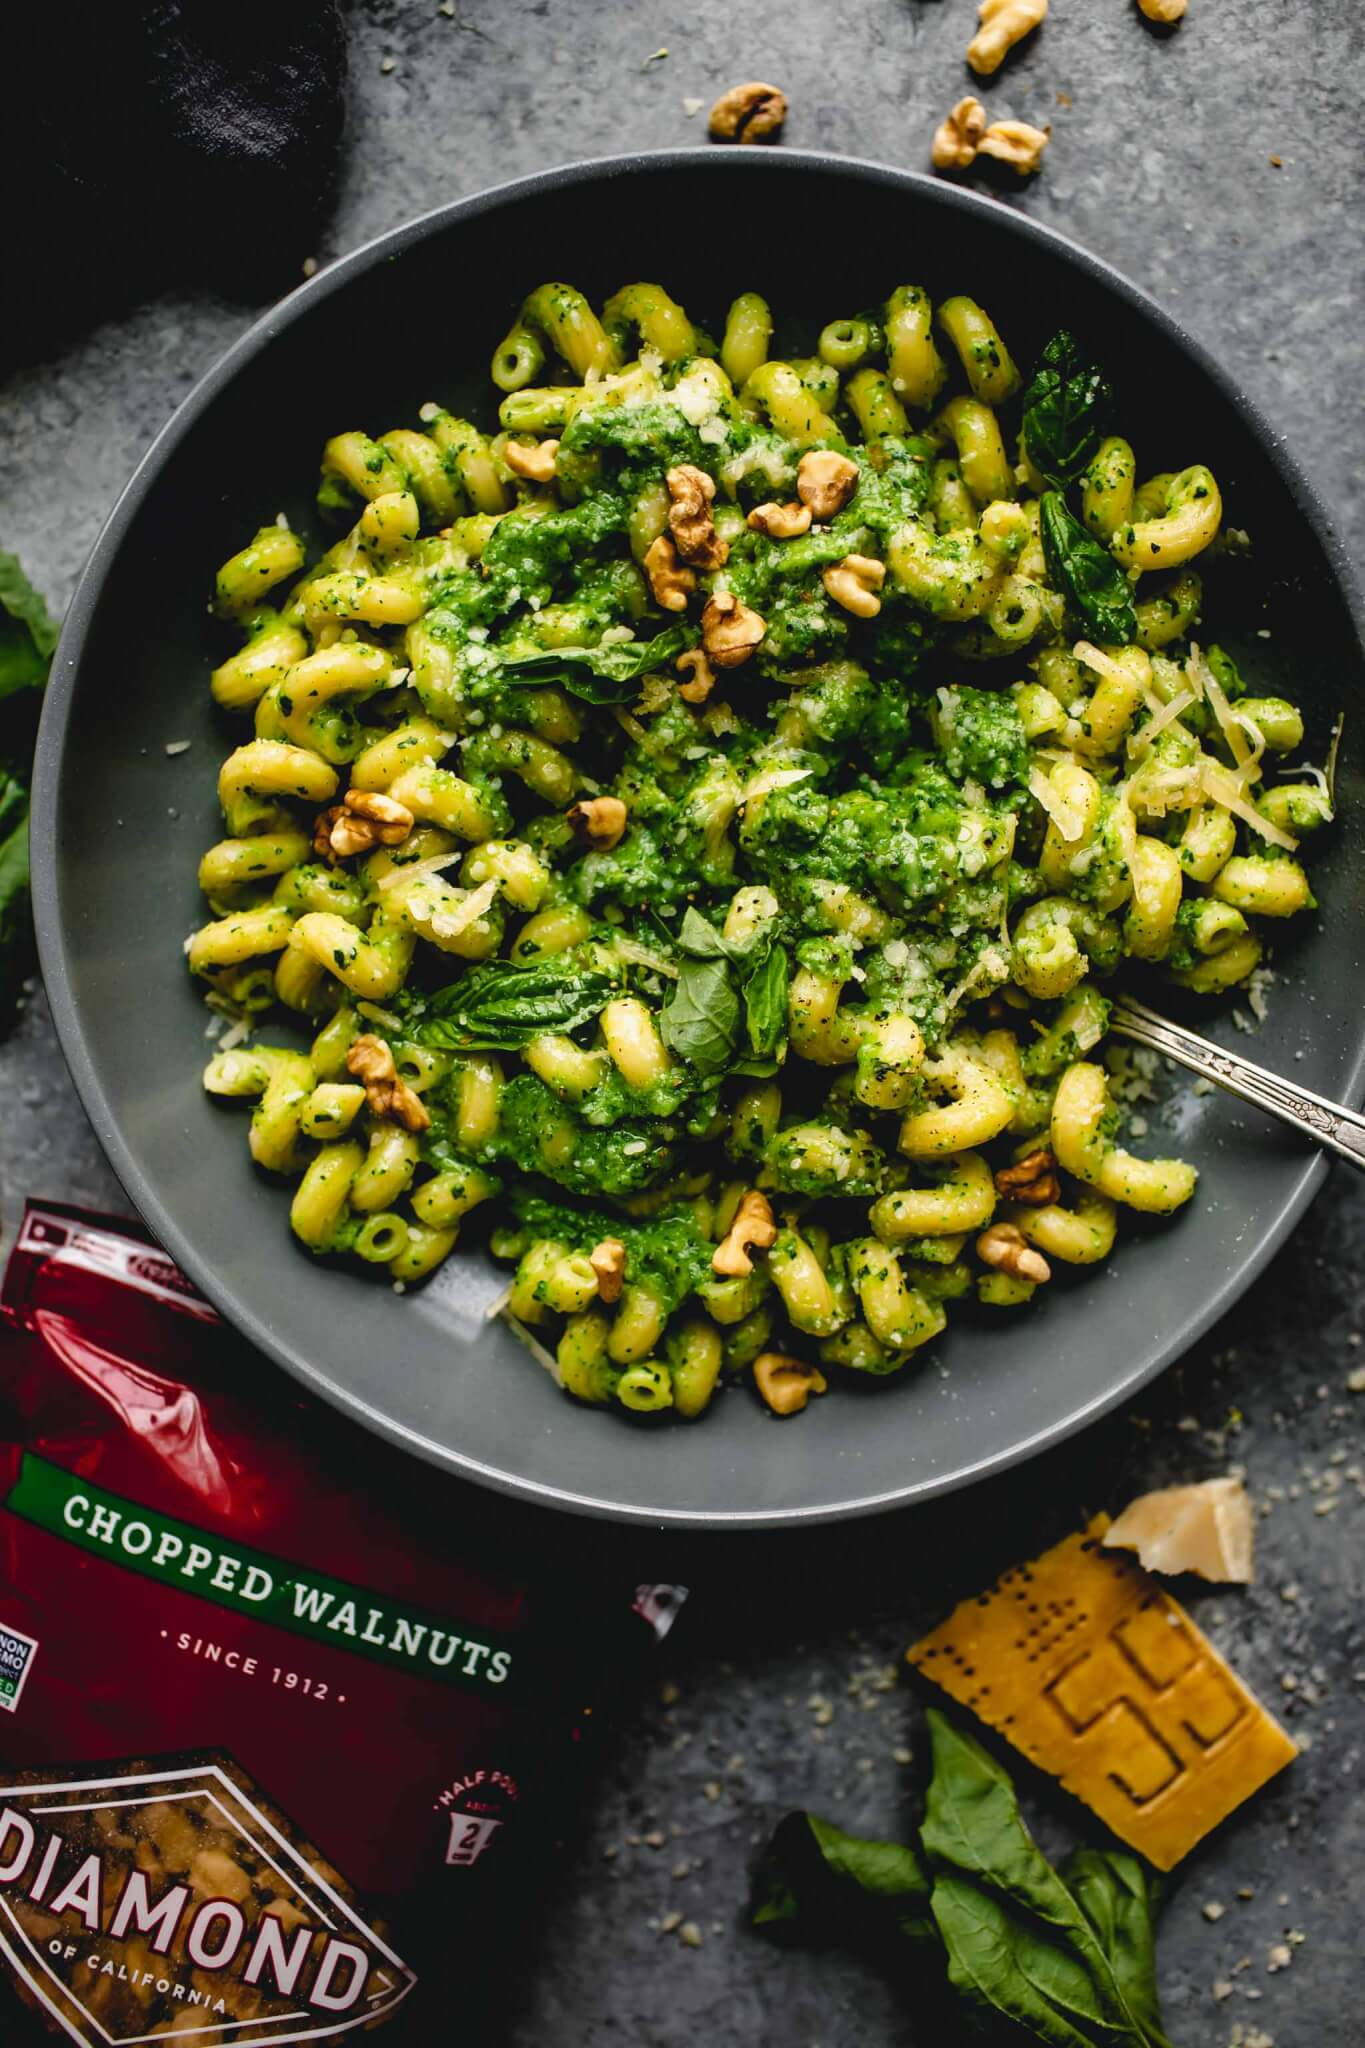 Bowl of cavatappi pasta tossed with broccoli pesto next to wedge of parmesan and package of walnuts.